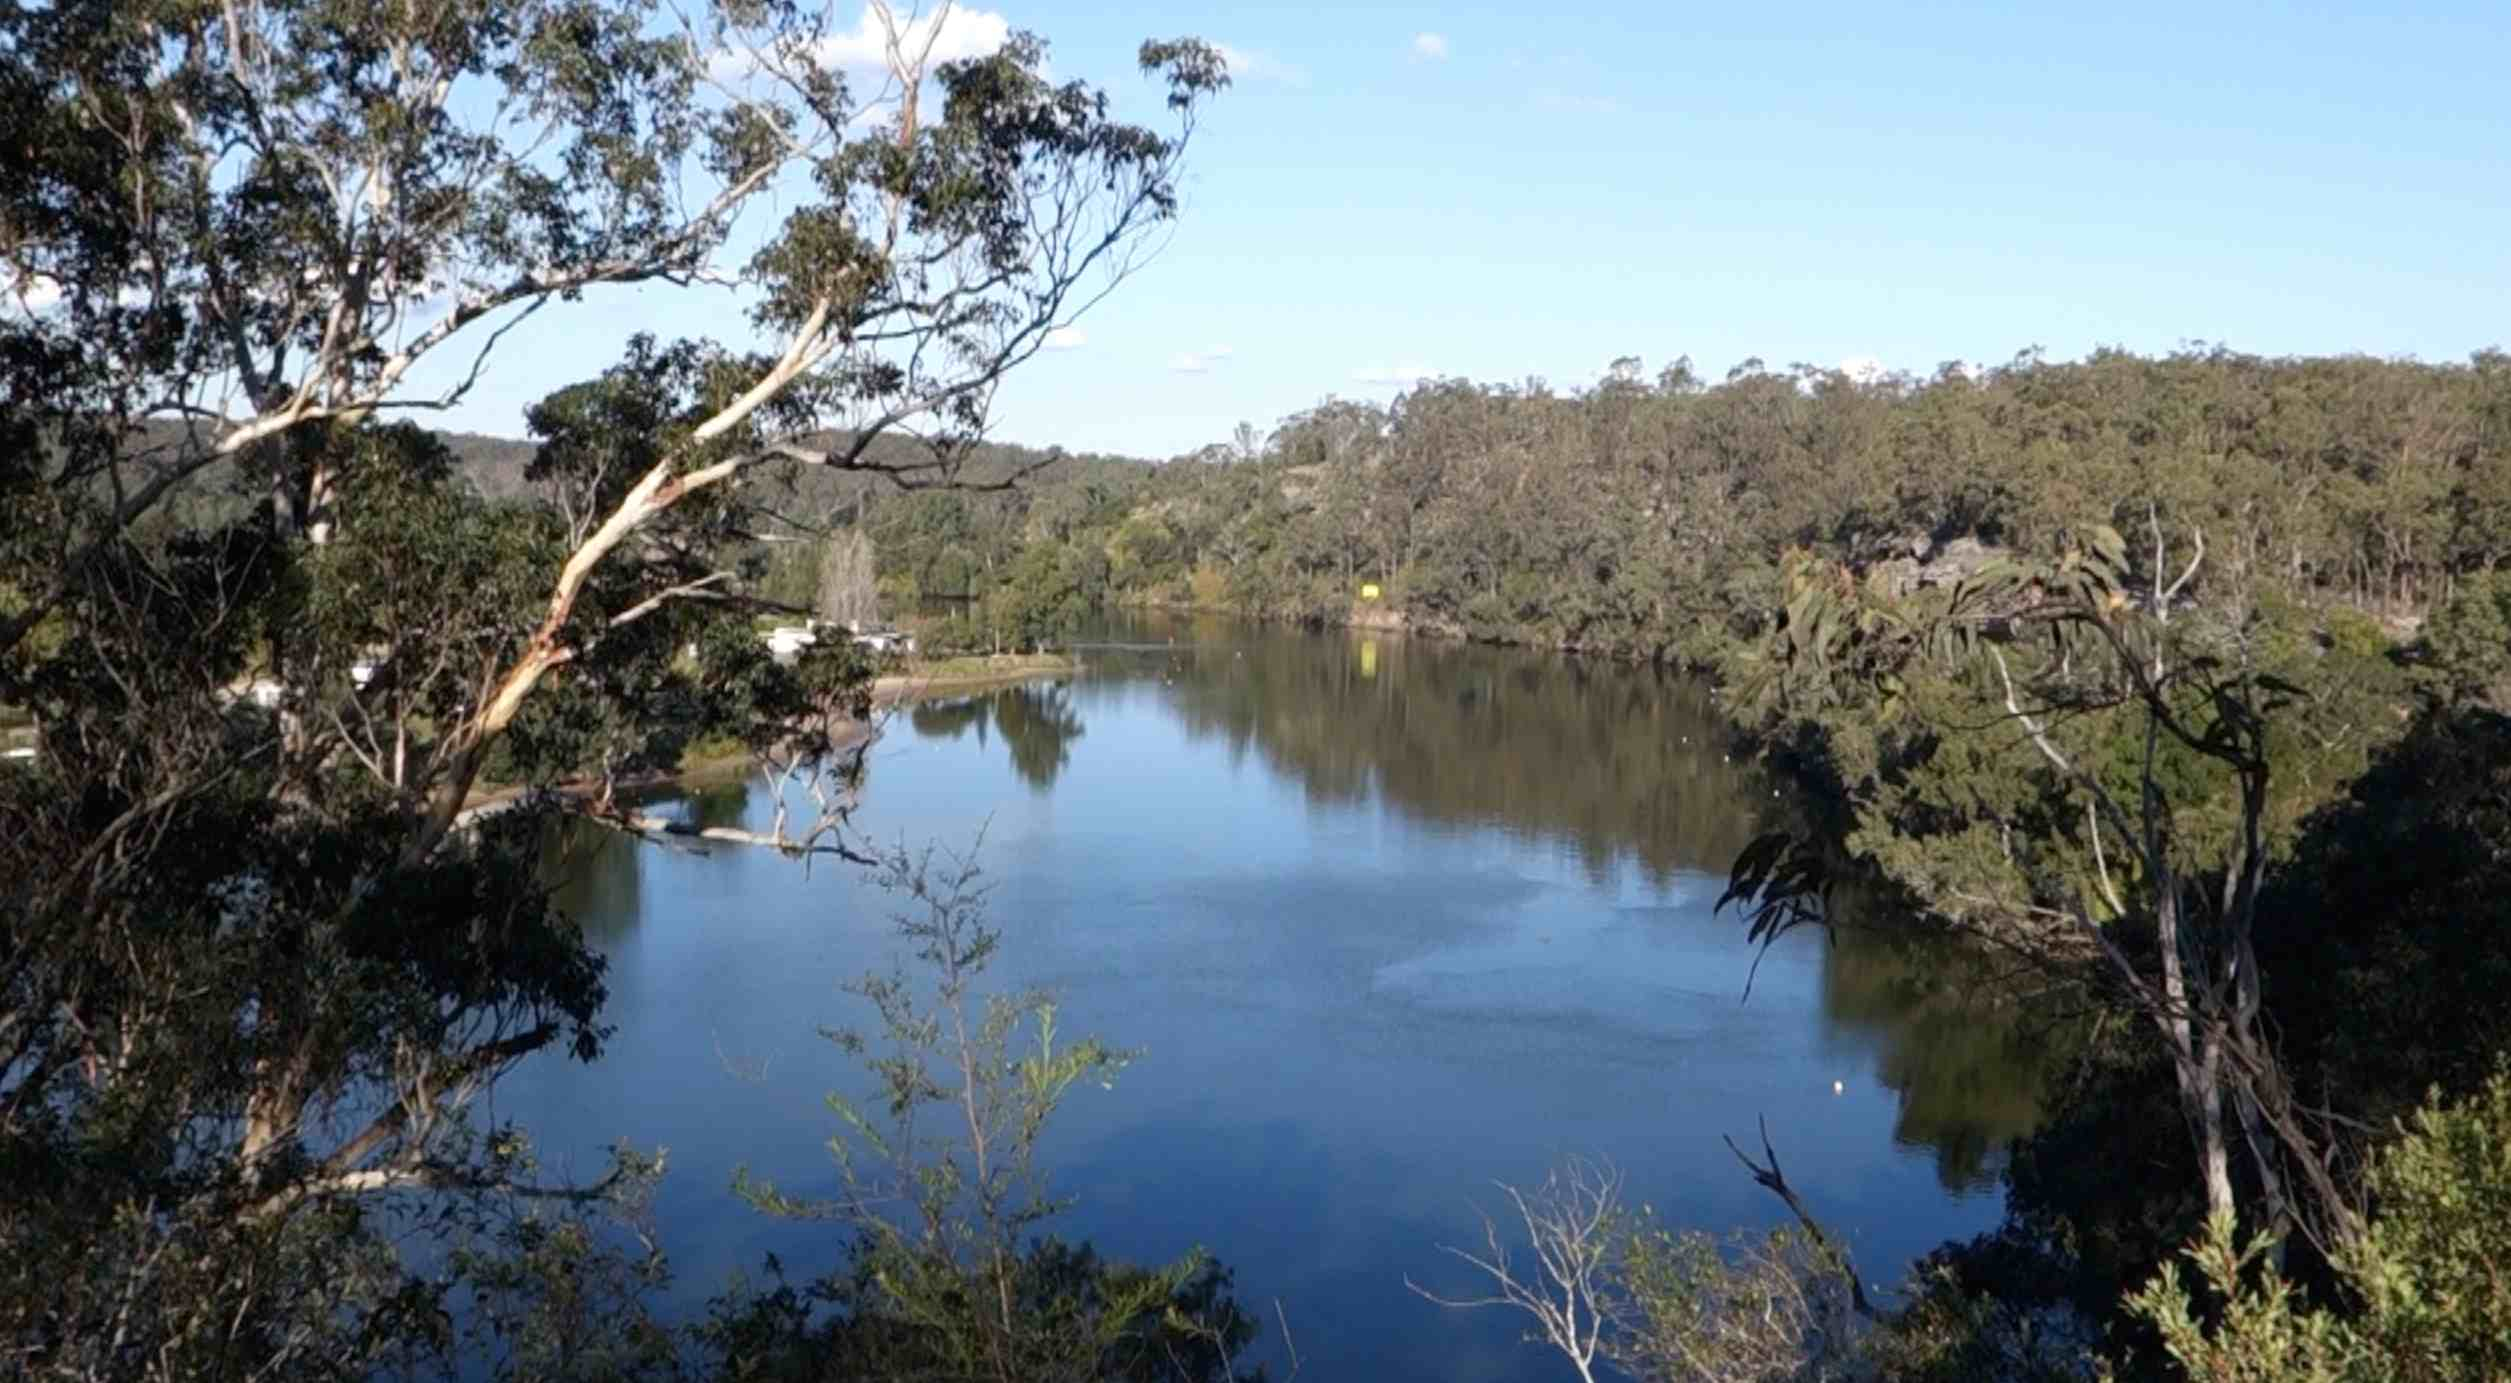 Looking upon the Hawkesbury River from above